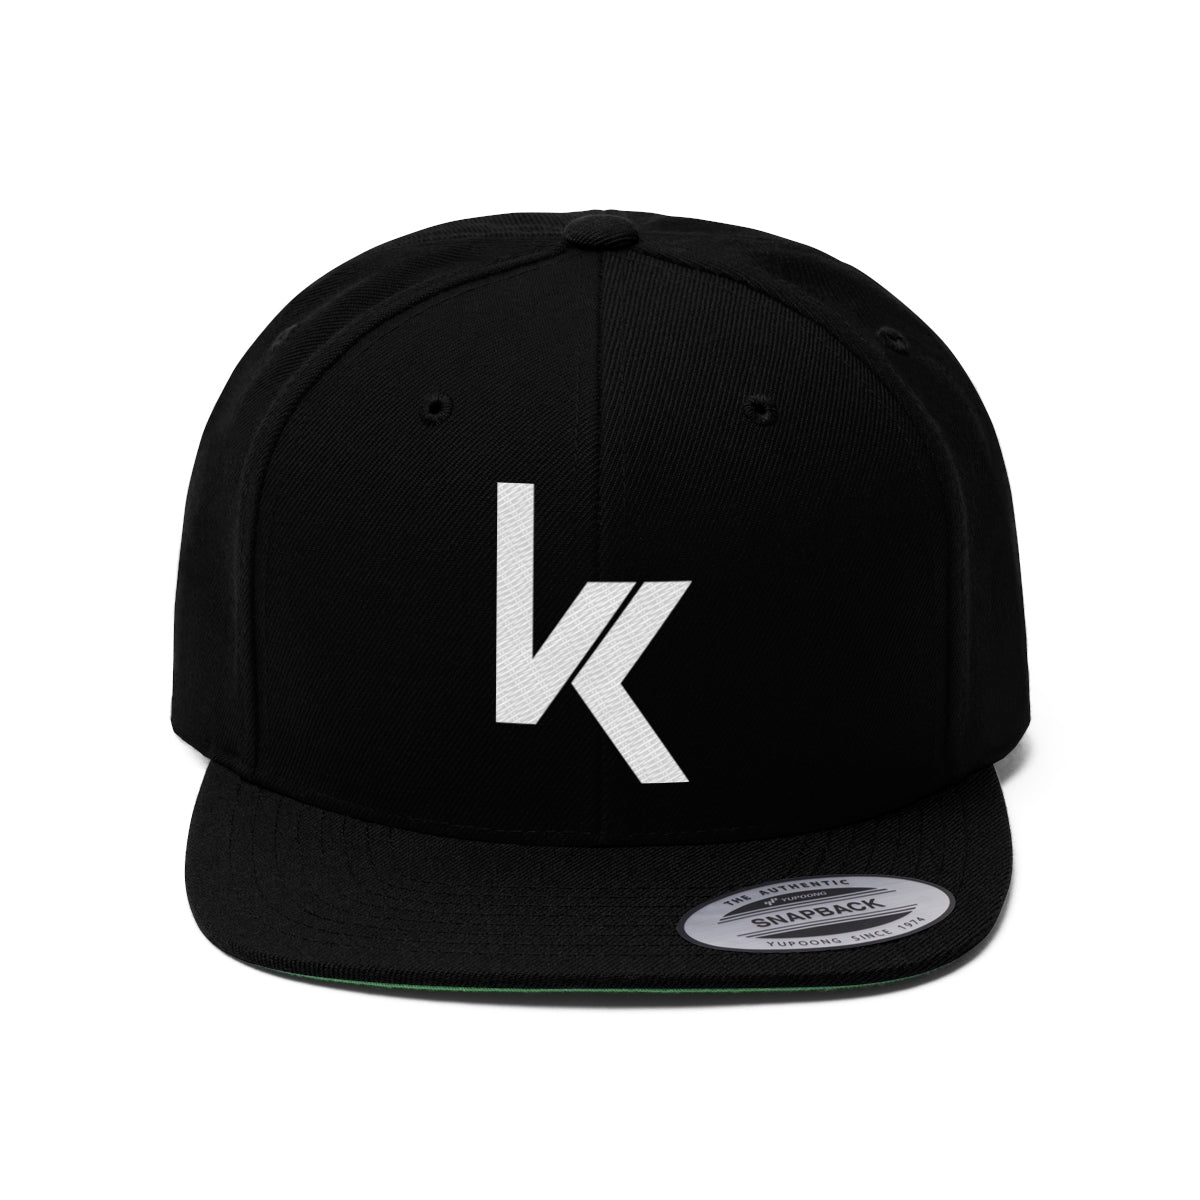 VK Logo Black Snapback Flat Bill Hat